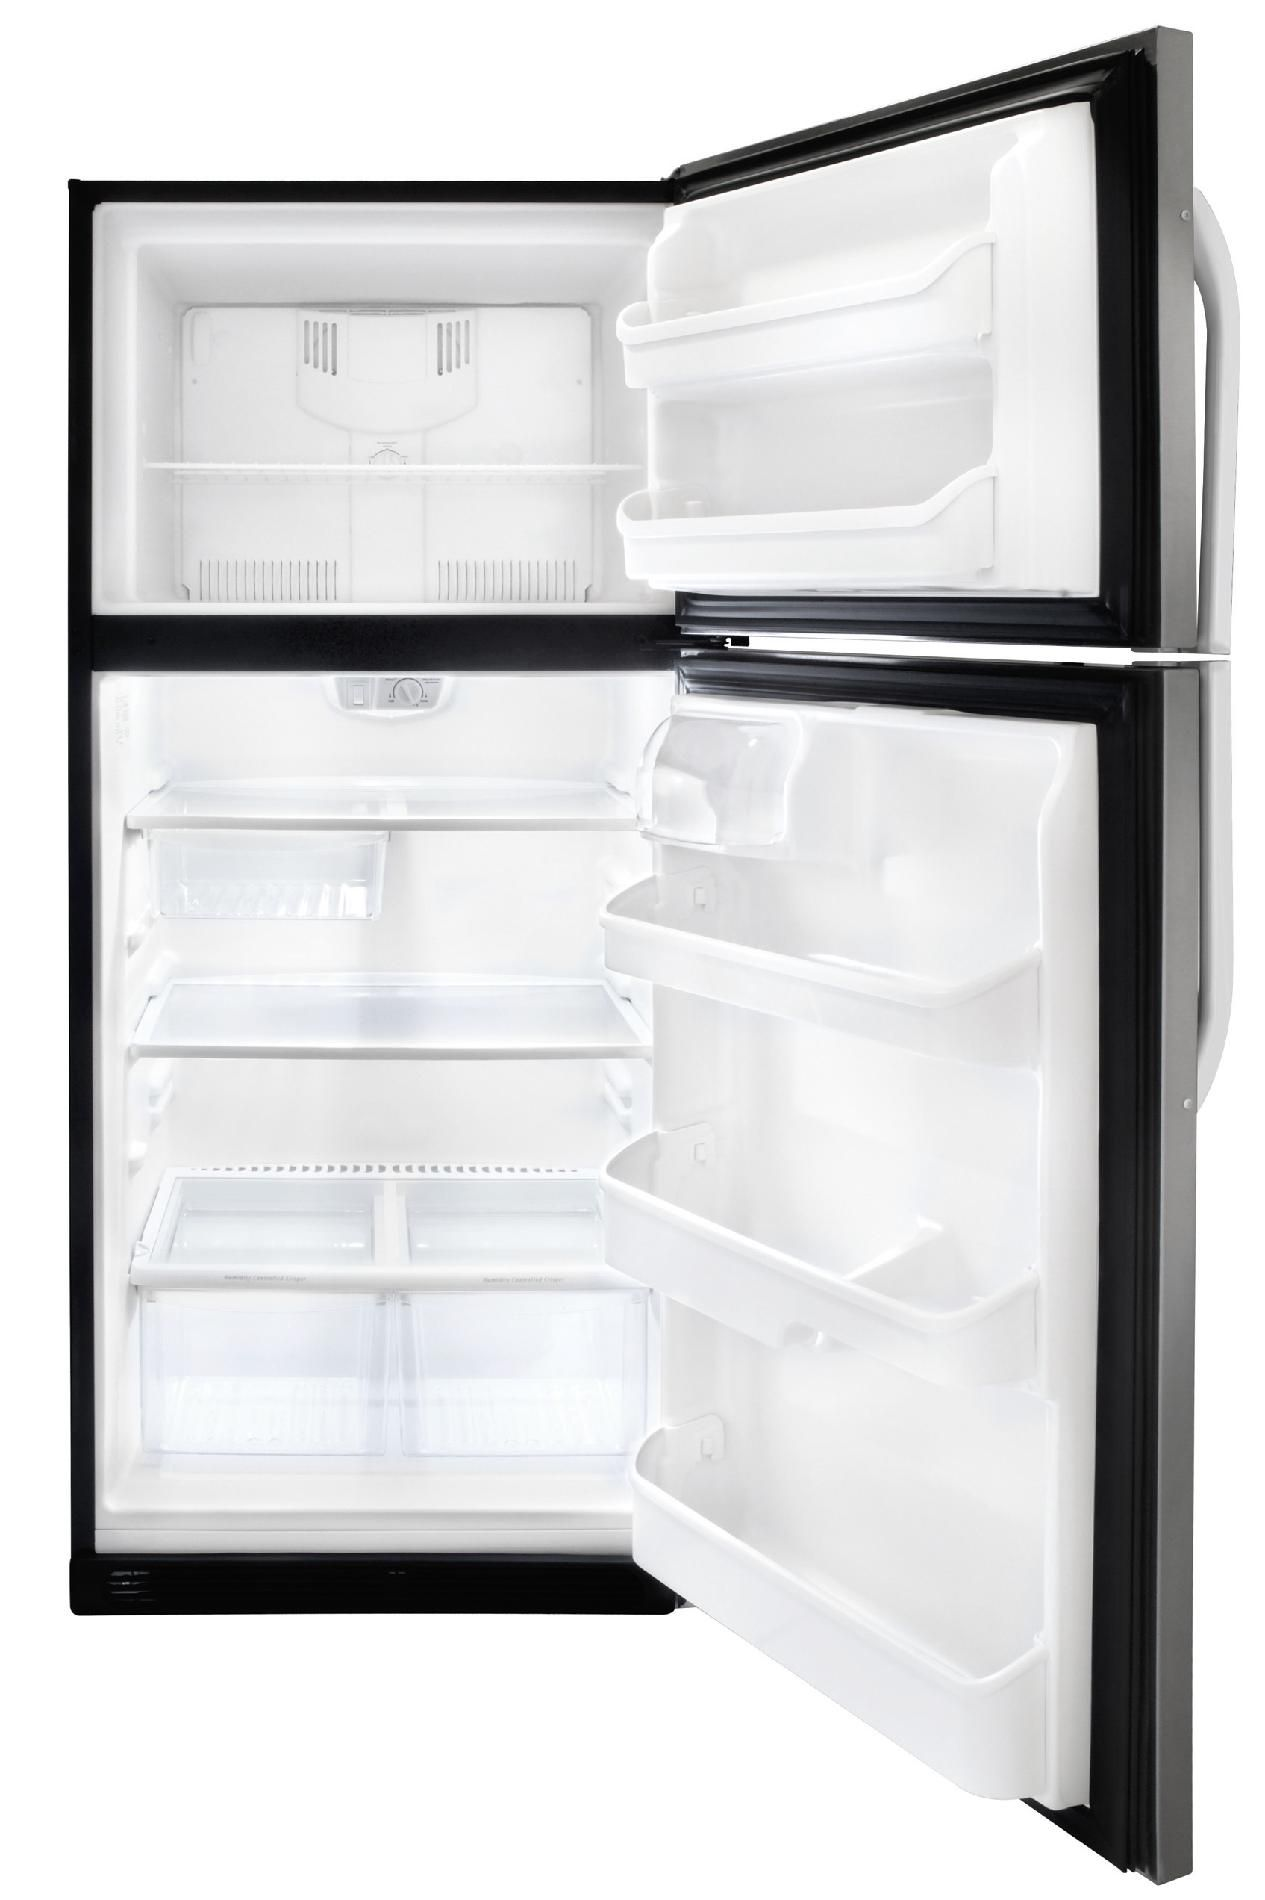 Frigidaire 20.5 cu. ft. Top Freezer Refrigerator - Stainless Steel